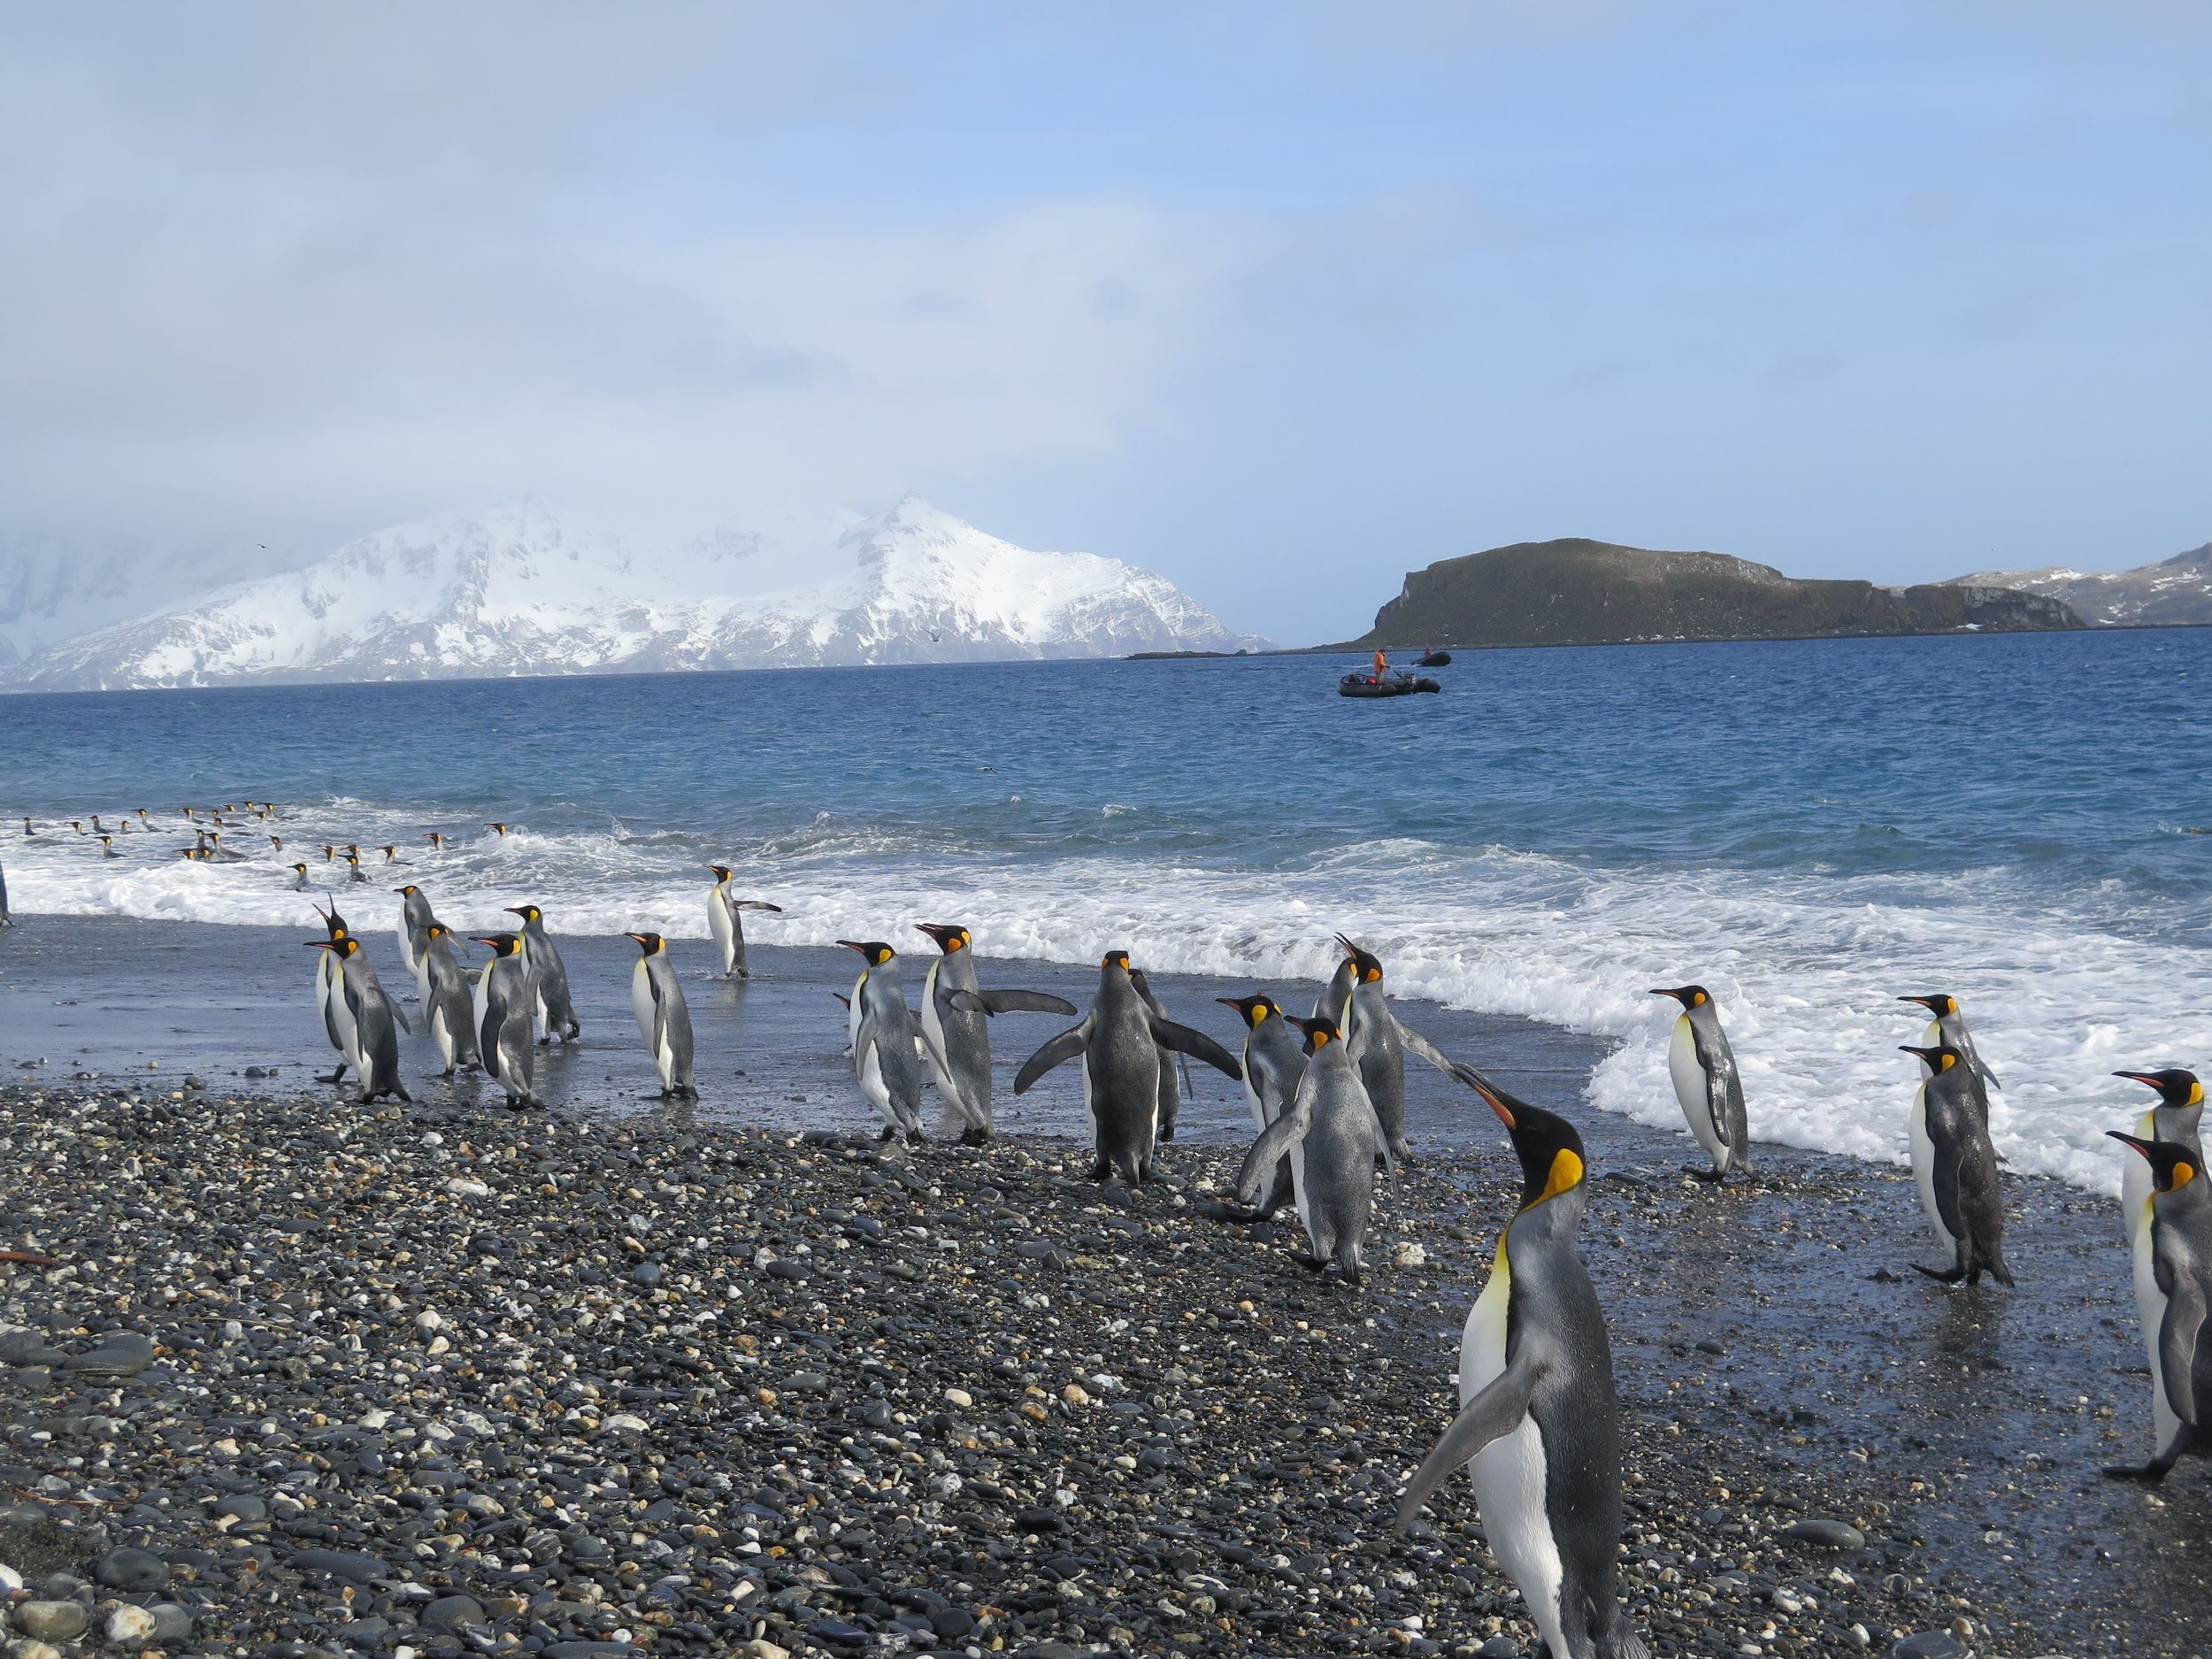 Waves of king penguins came ashore and joined the masses on the plain. The ocean is home to these penguins for most of their lives, during the months when they're not breeding or molting (as many of them were at this time).